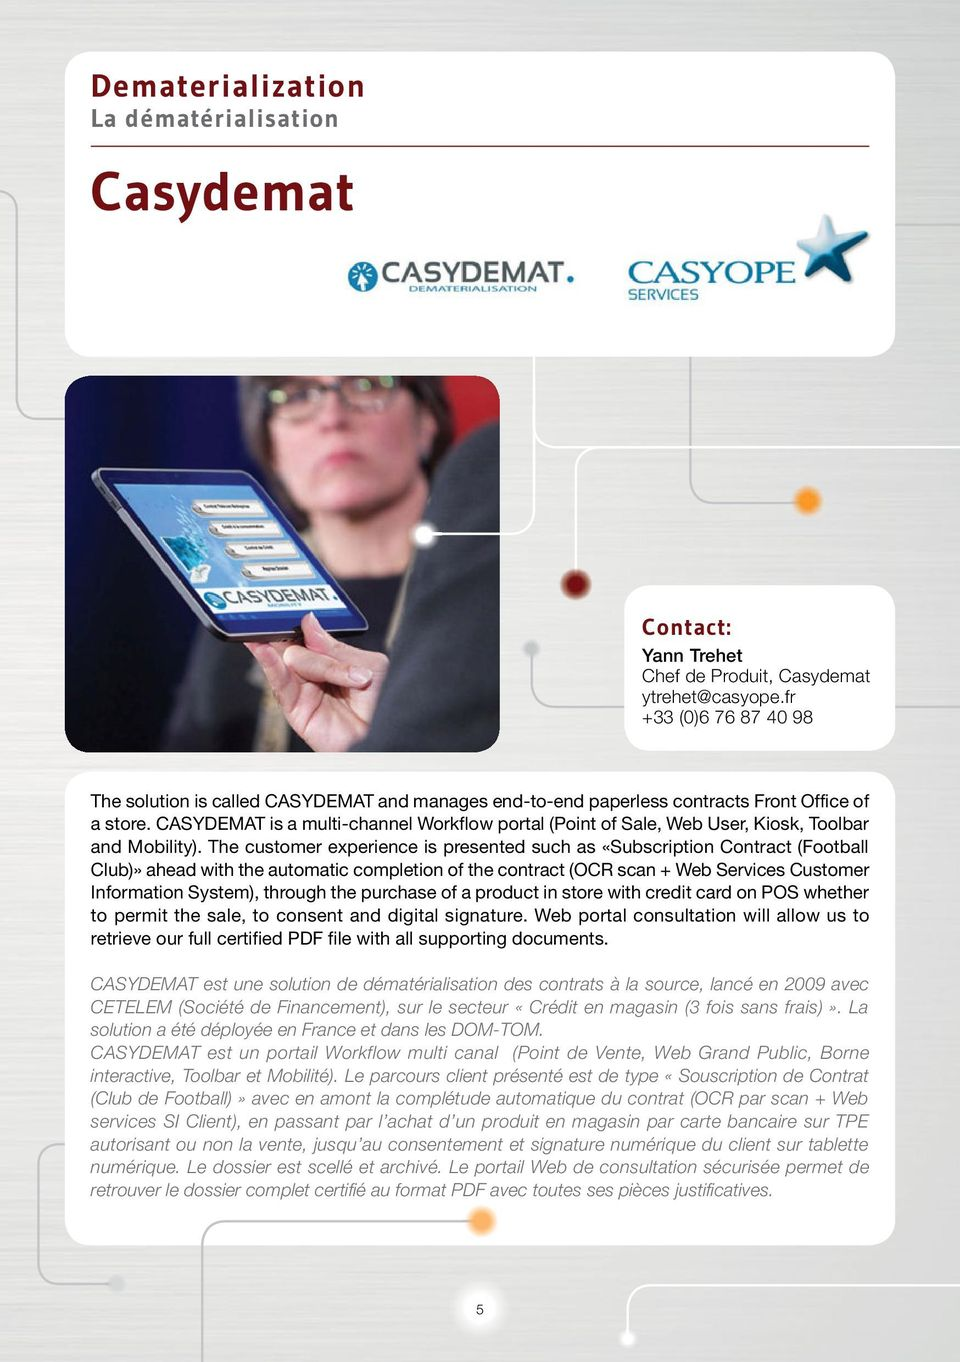 CASYDEMAT is a multi-channel Workflow portal (Point of Sale, Web User, Kiosk, Toolbar and Mobility).